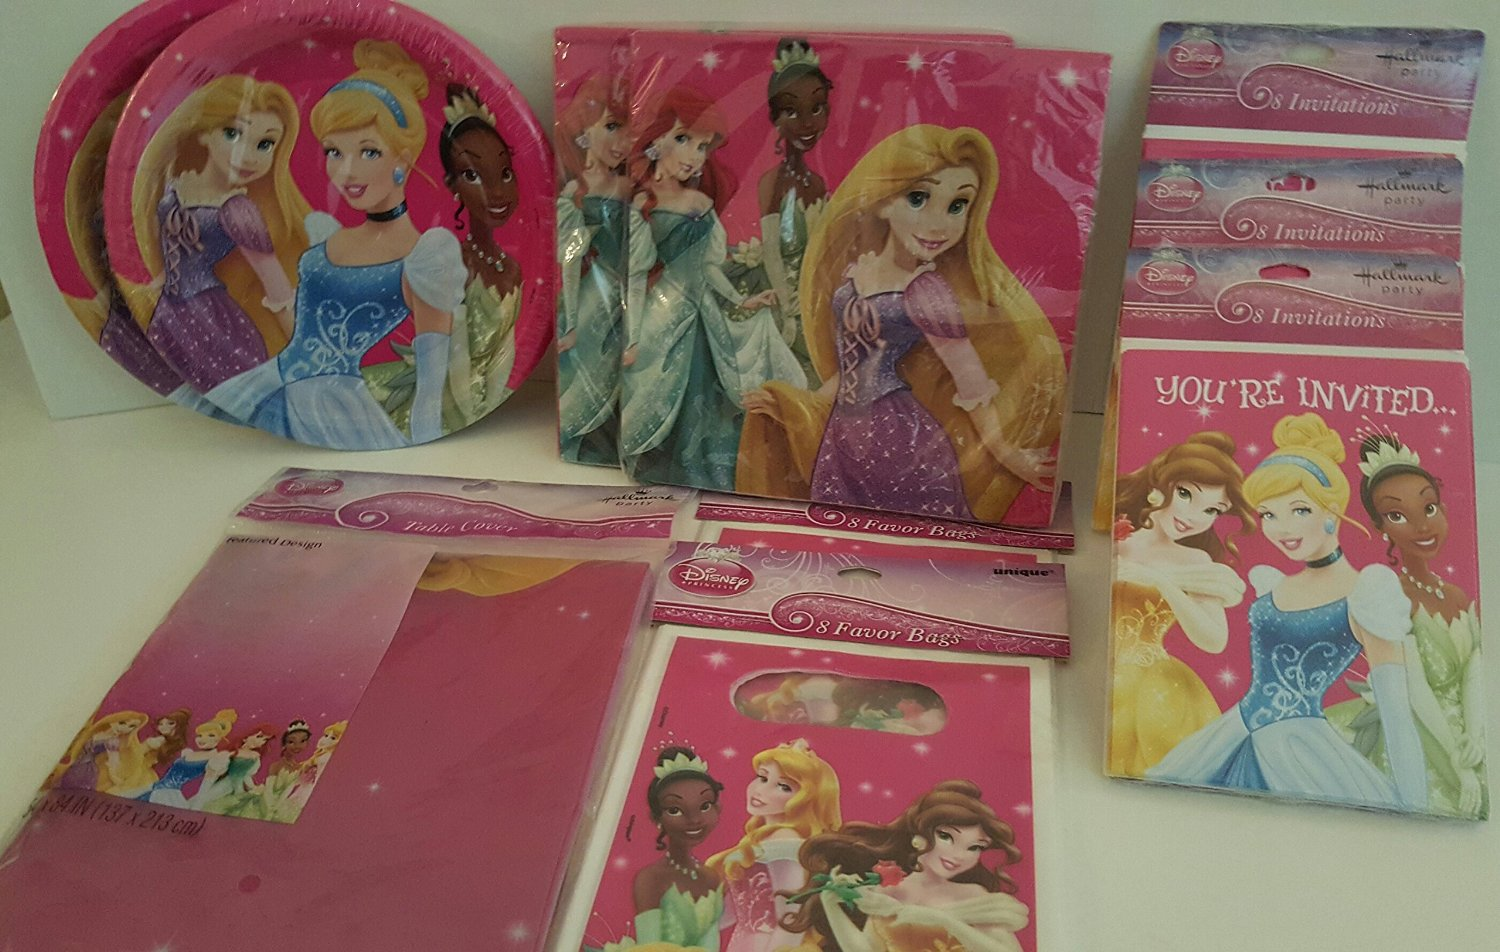 Disney Princess Birthday Party Table Cover, 8 (ct) Party Favor Bags2 Pks and 16 (ct) Napkins 2 Pcks, 8 (ct) Girls Birthday Invitations 3 Pks